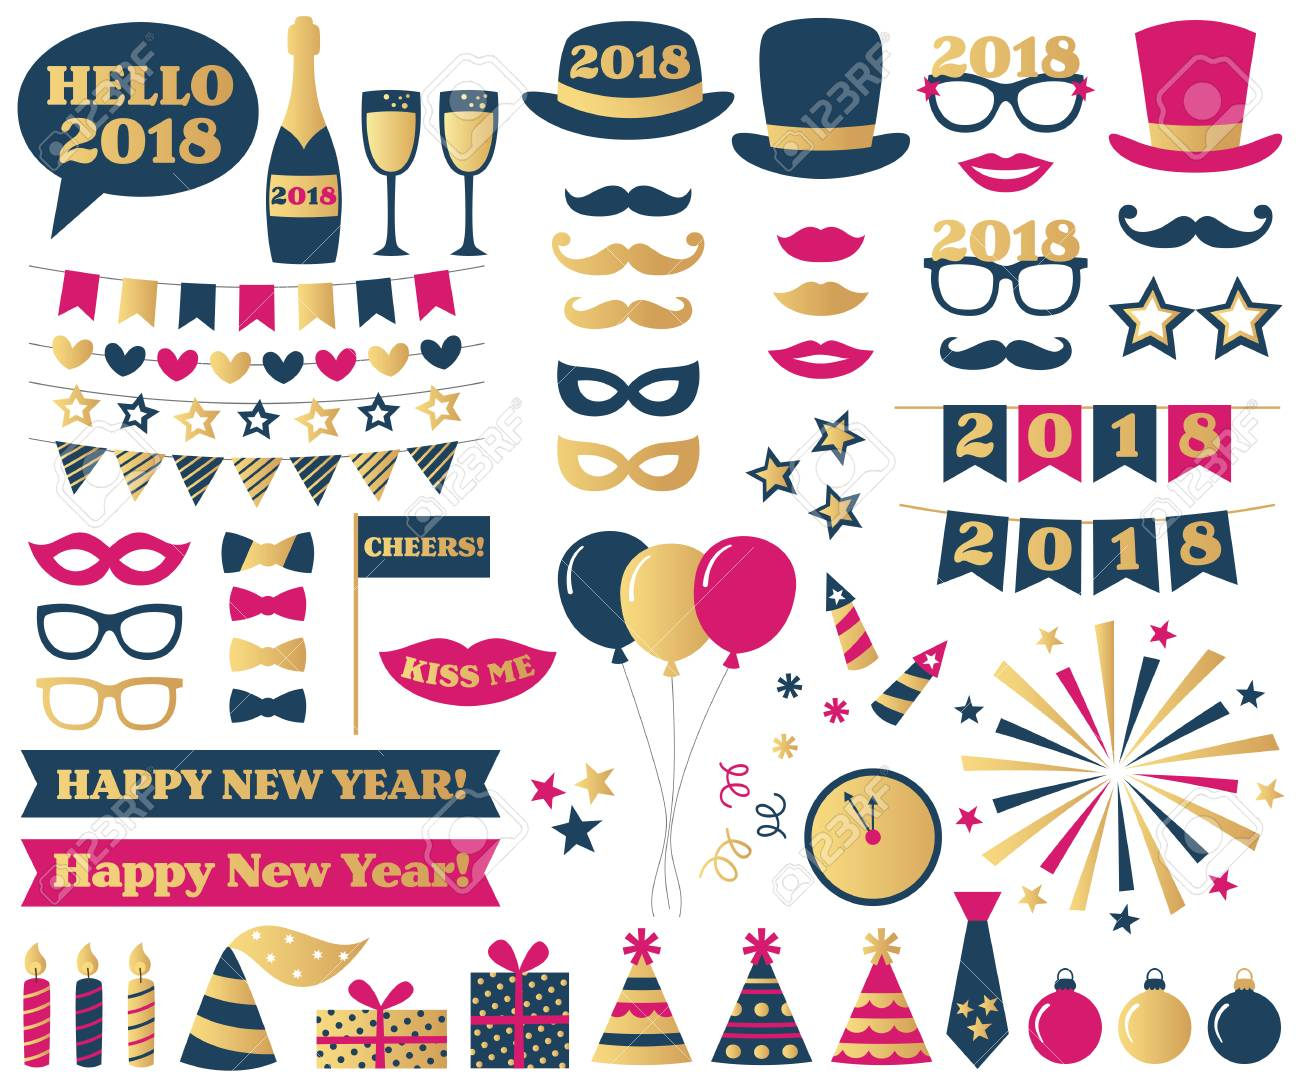 New Year Eve Party Booth Props Royalty Free Cliparts Vectors And